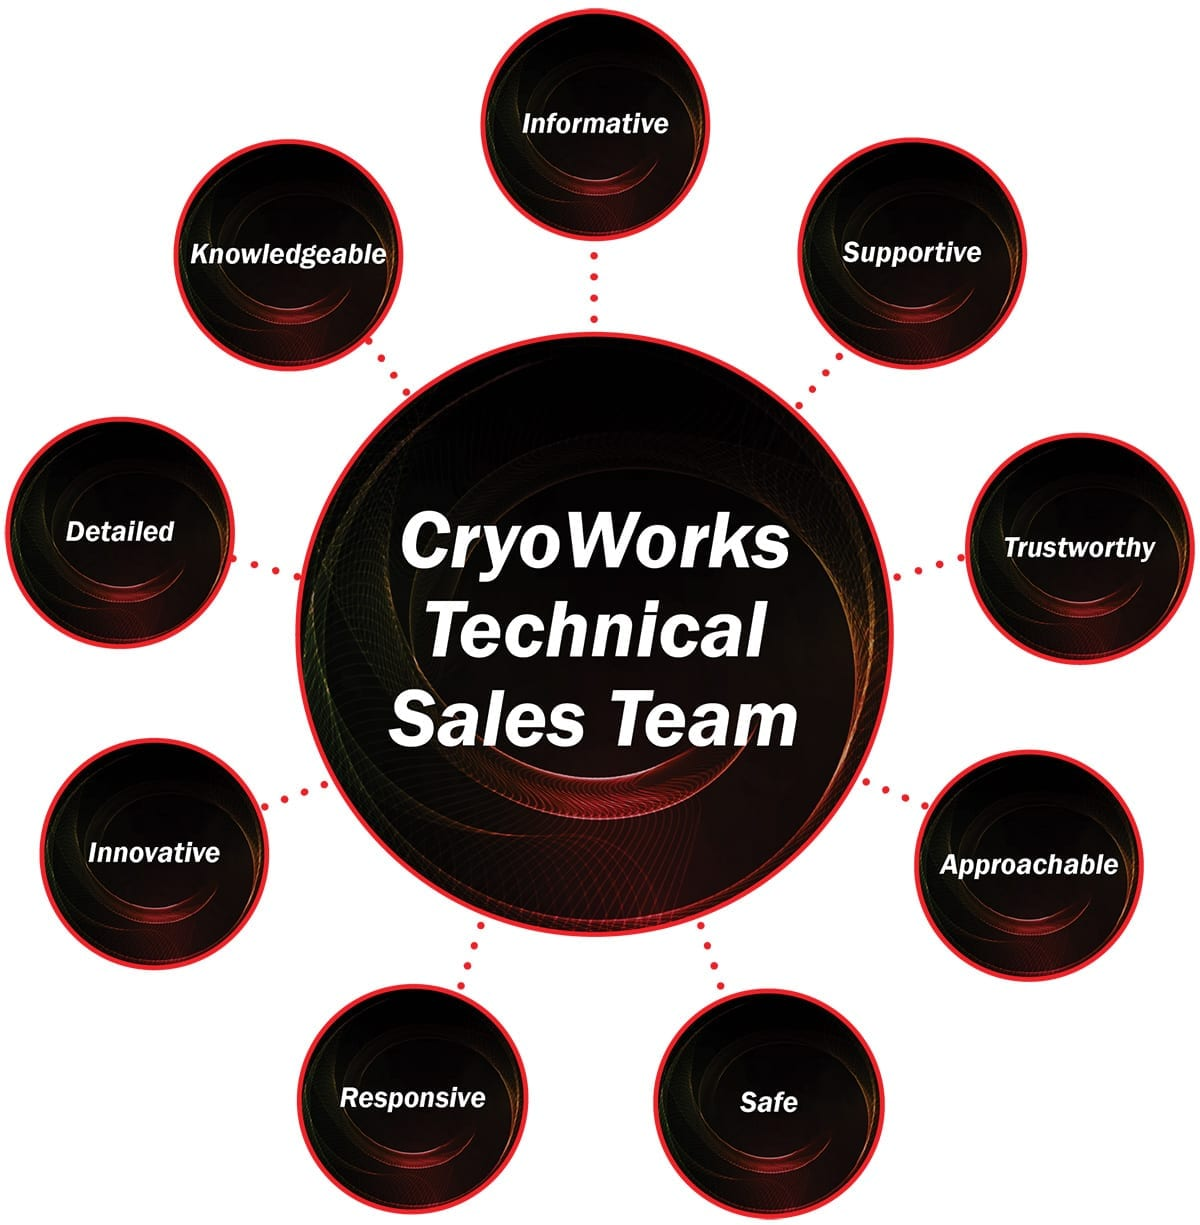 CryoWorks Technical Sales Team